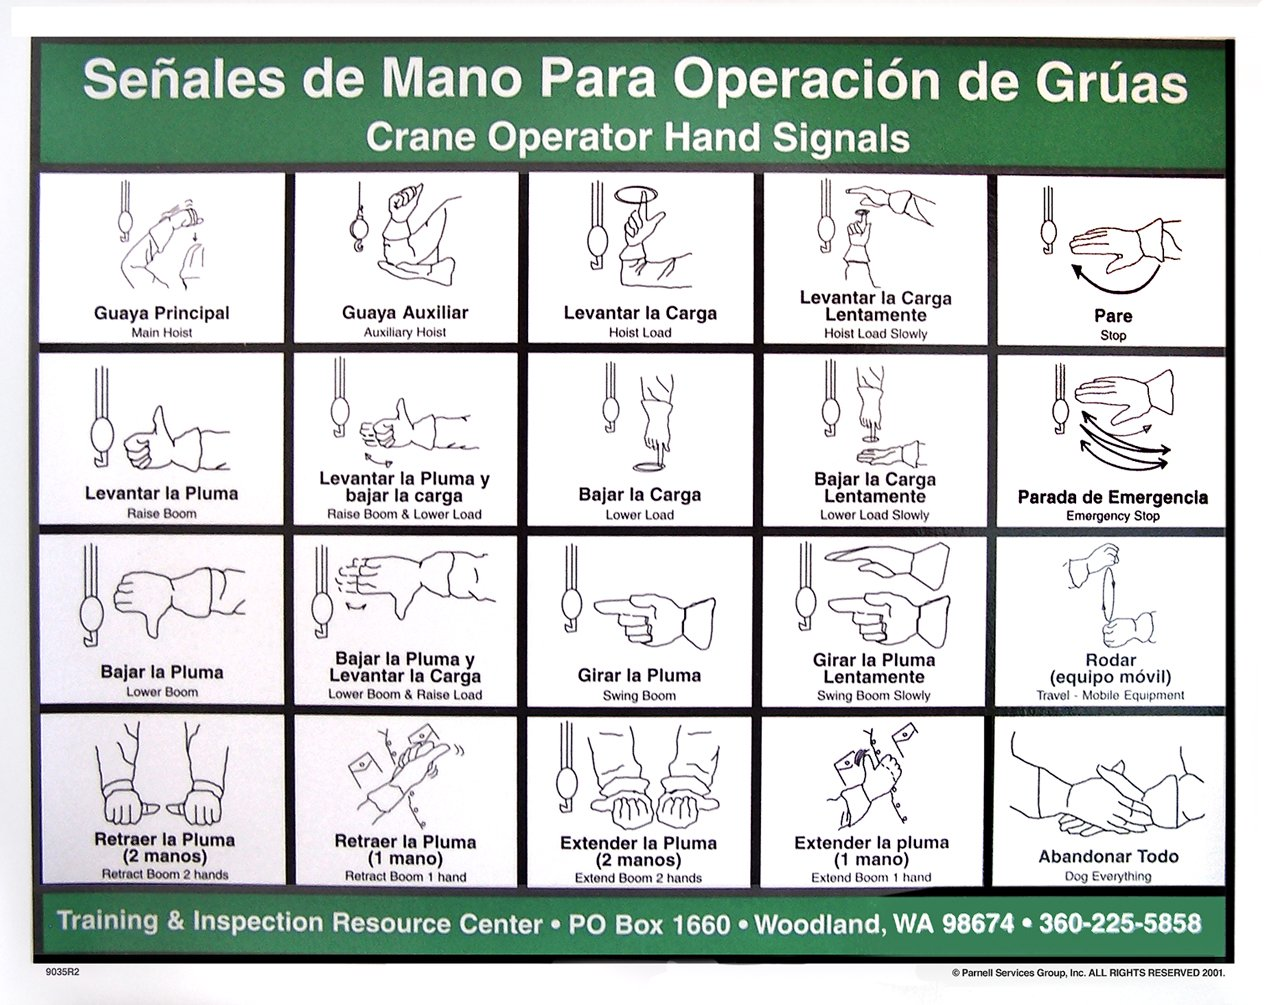 crane hand signals chart spanish amazon com crane. Black Bedroom Furniture Sets. Home Design Ideas